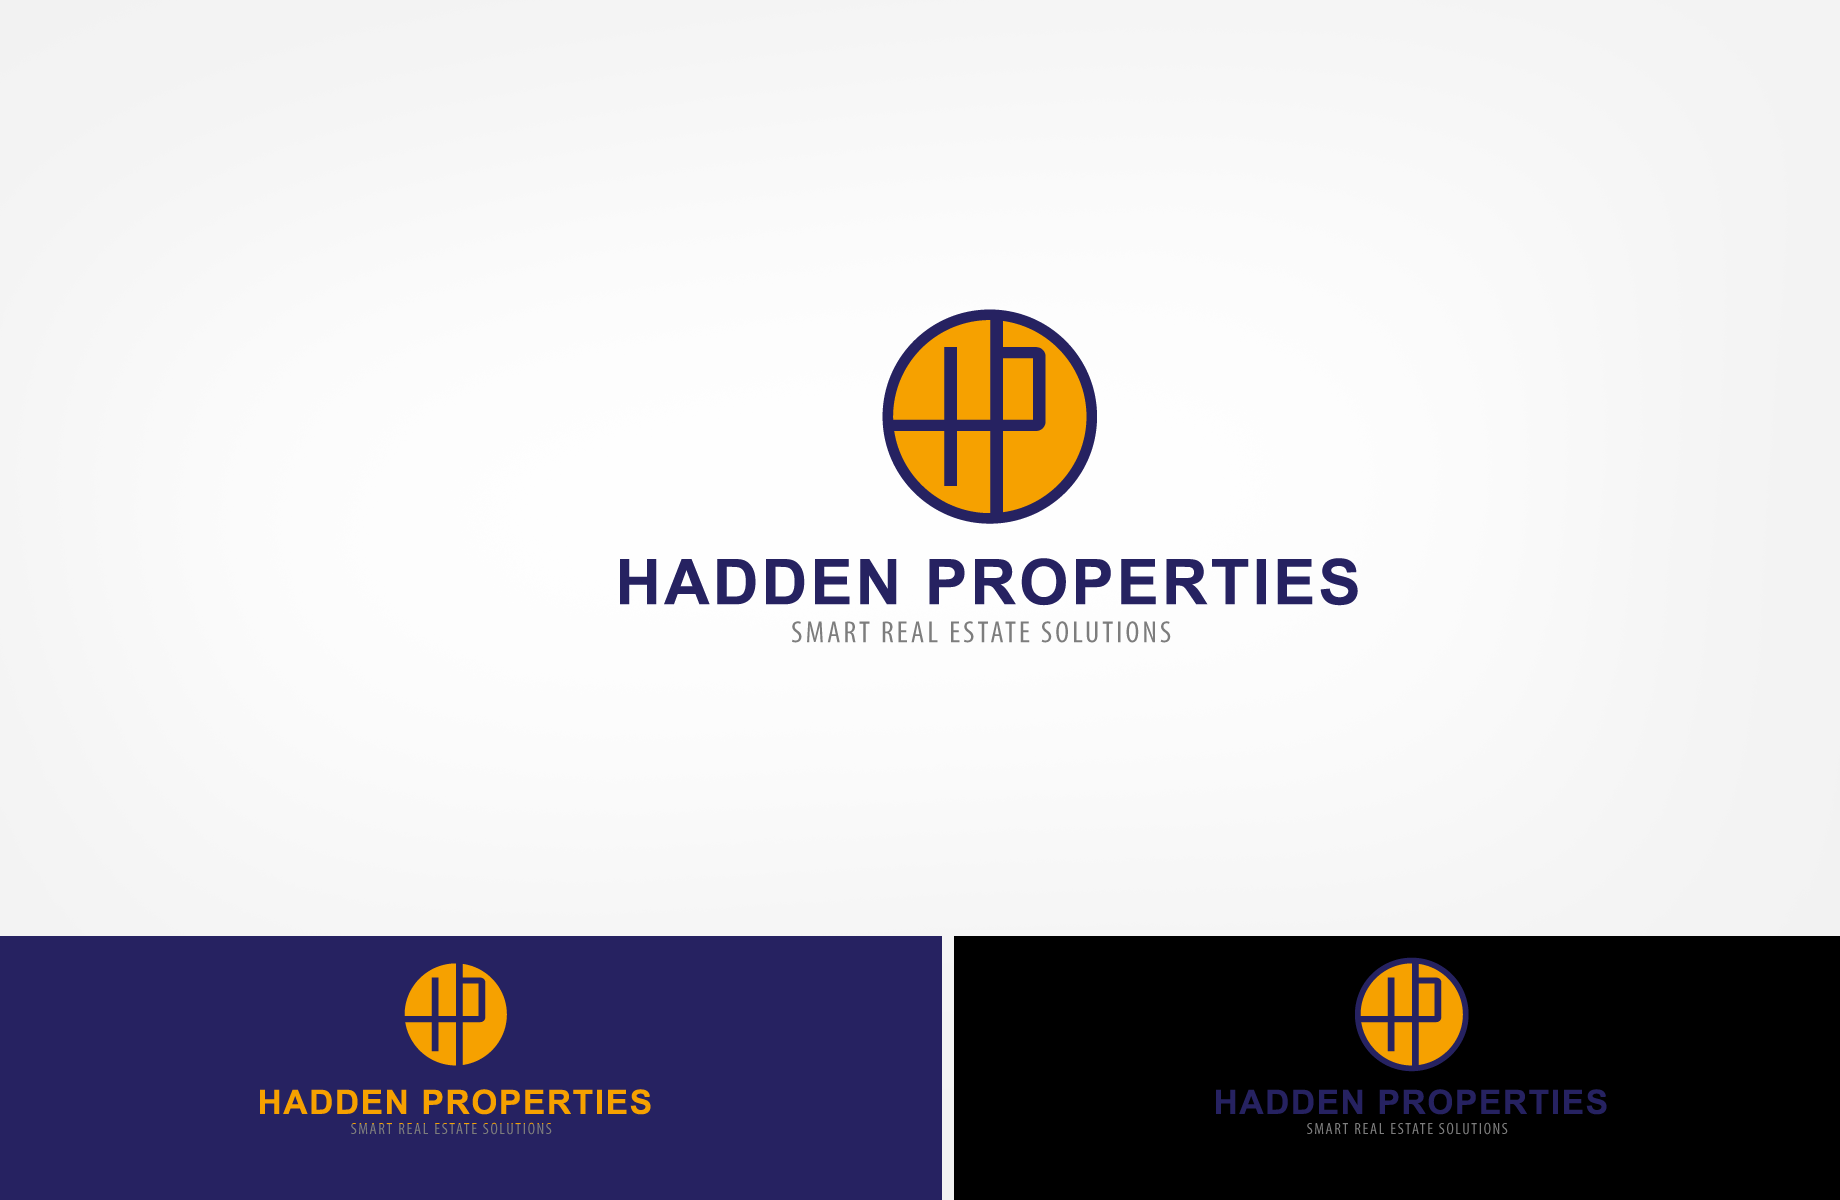 Logo Design by Jan Chua - Entry No. 58 in the Logo Design Contest Artistic Logo Design for Hadden Properties.